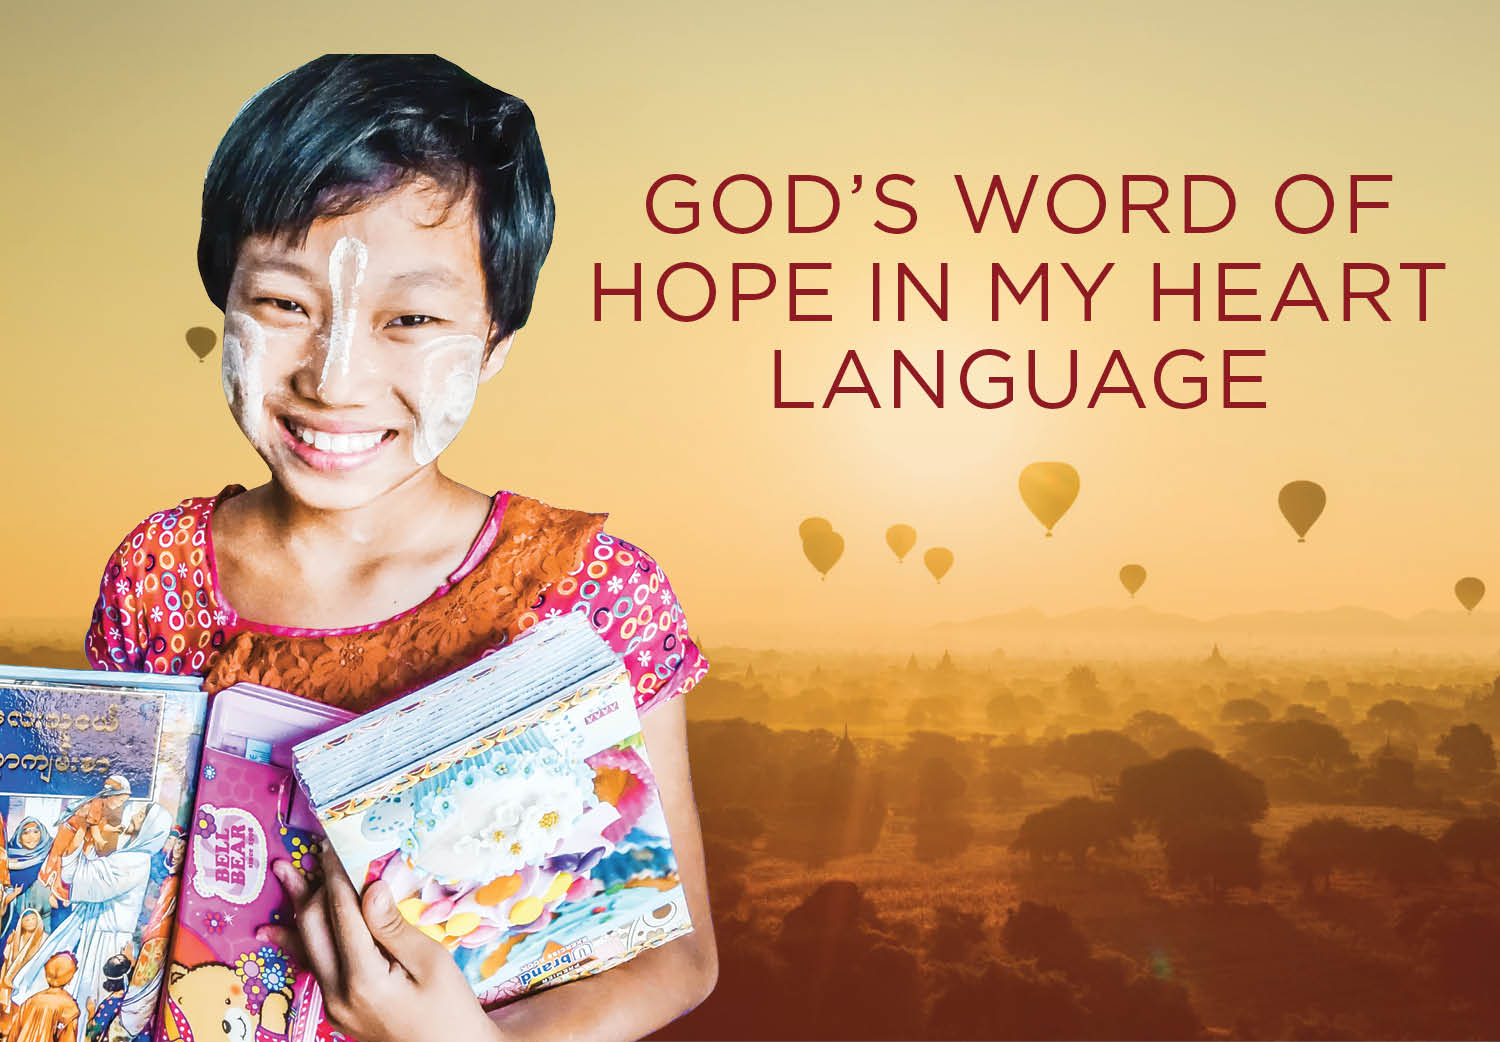 Bible Society of Singapore | Our mission is to make the Word of God